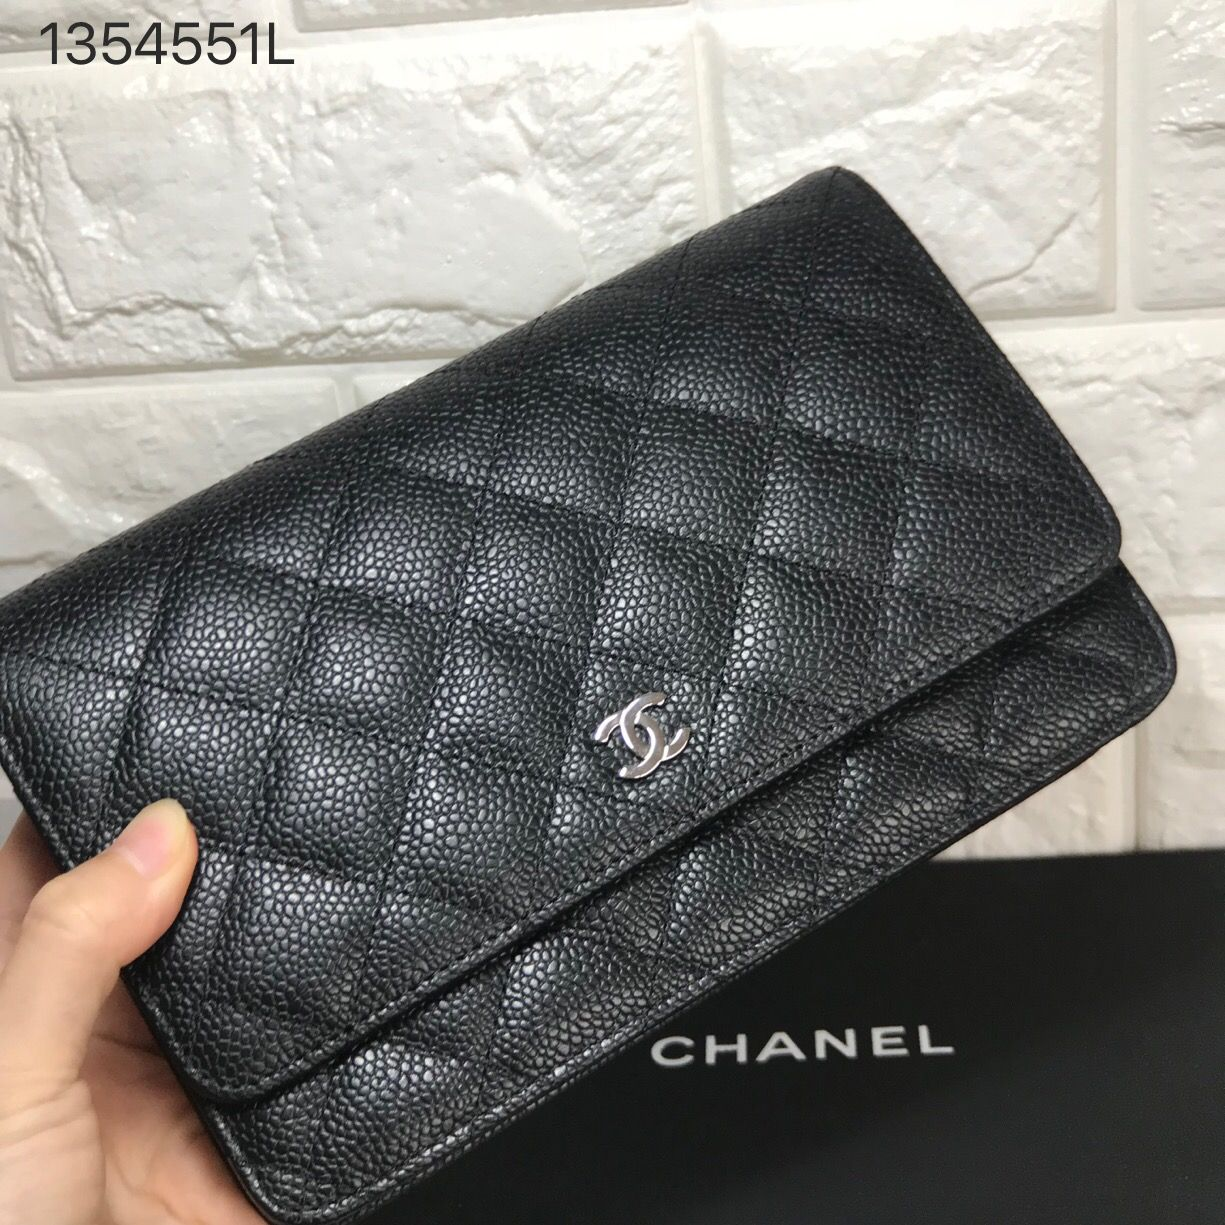 bbfe56a0a Chanel WOC wallet of chain purse original leather. Black silver ...